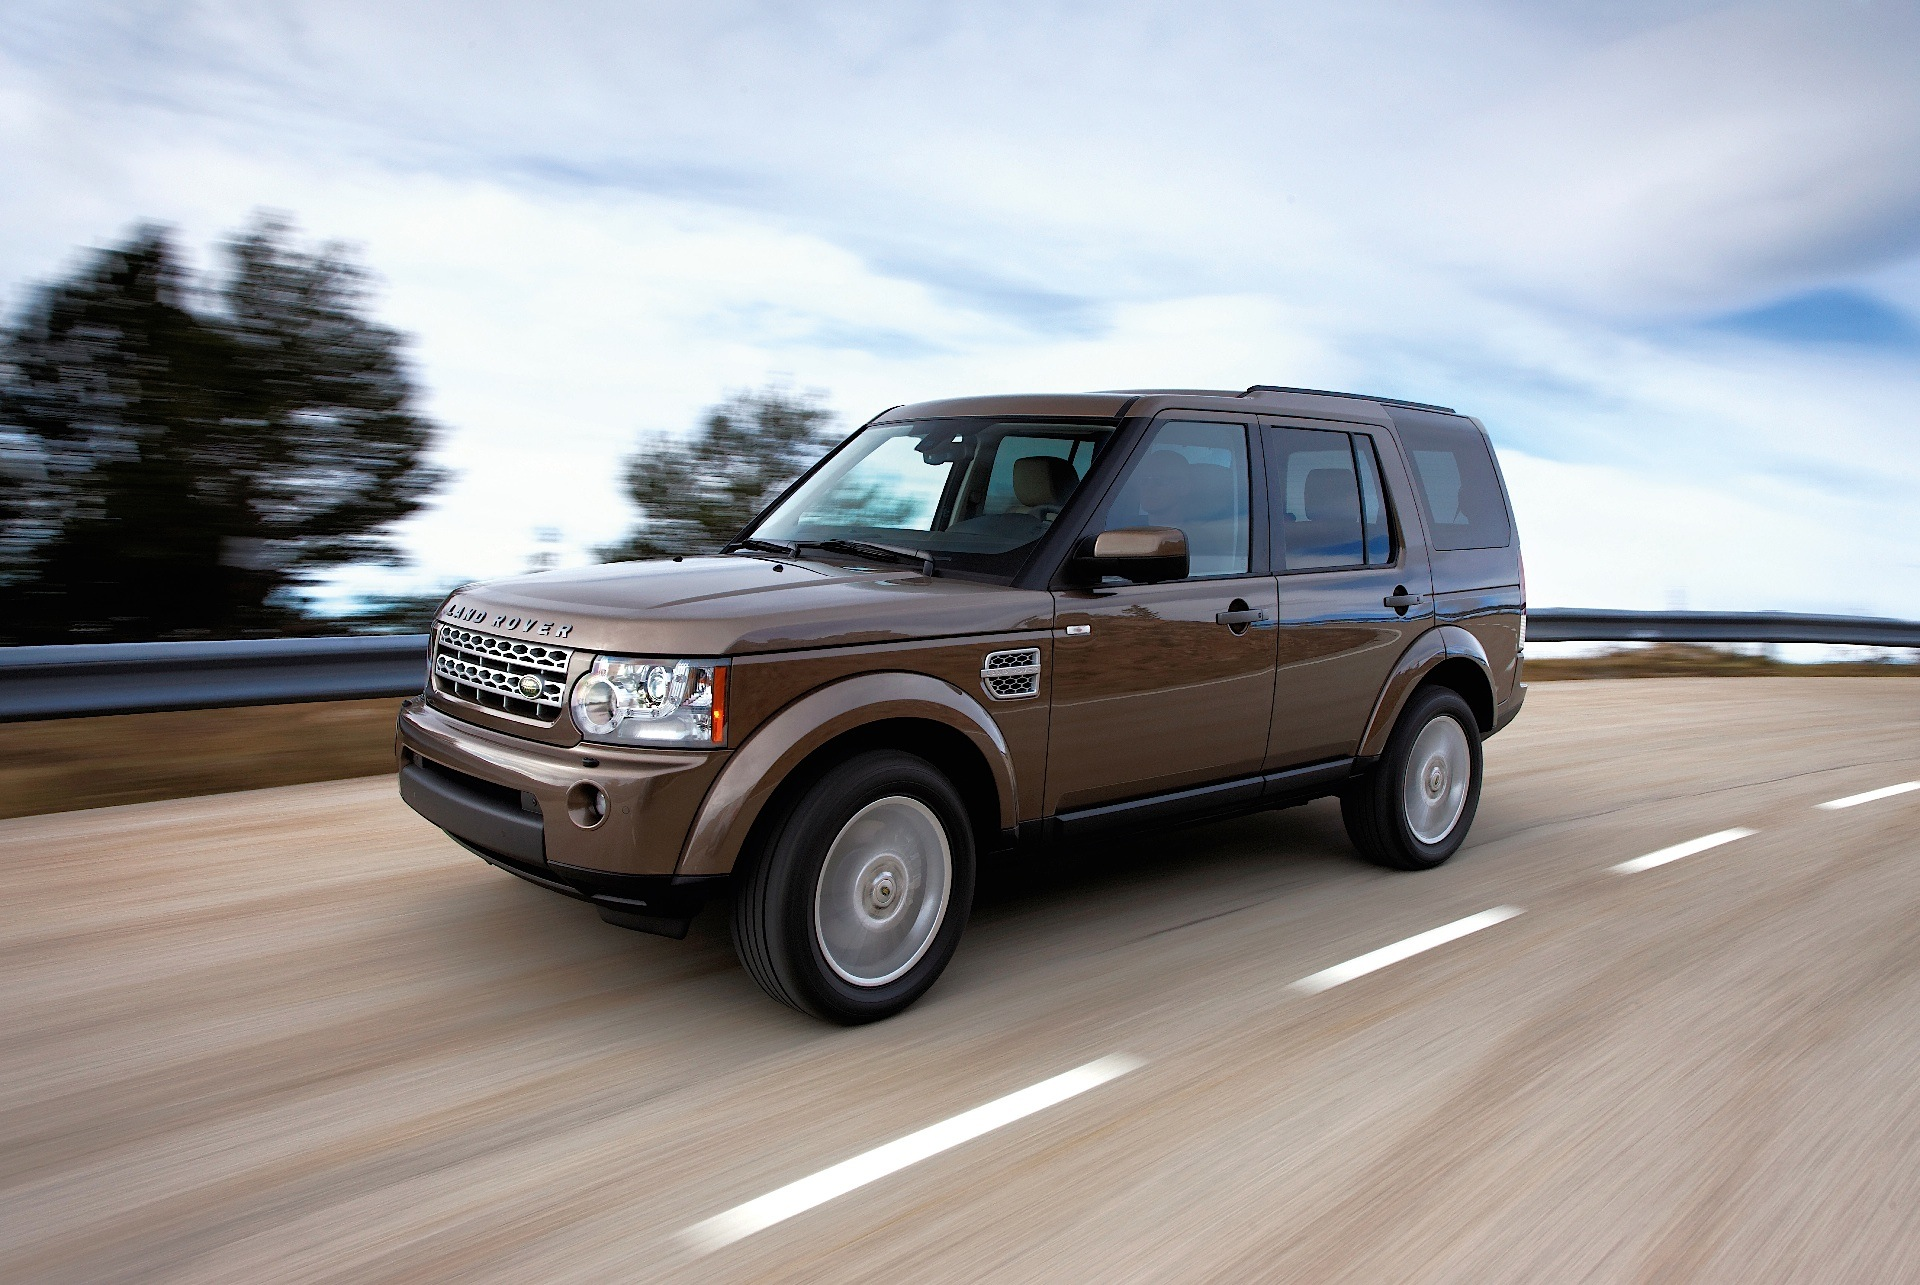 LAND ROVER Discovery LR4 specs 2009 2010 2011 2012 2013